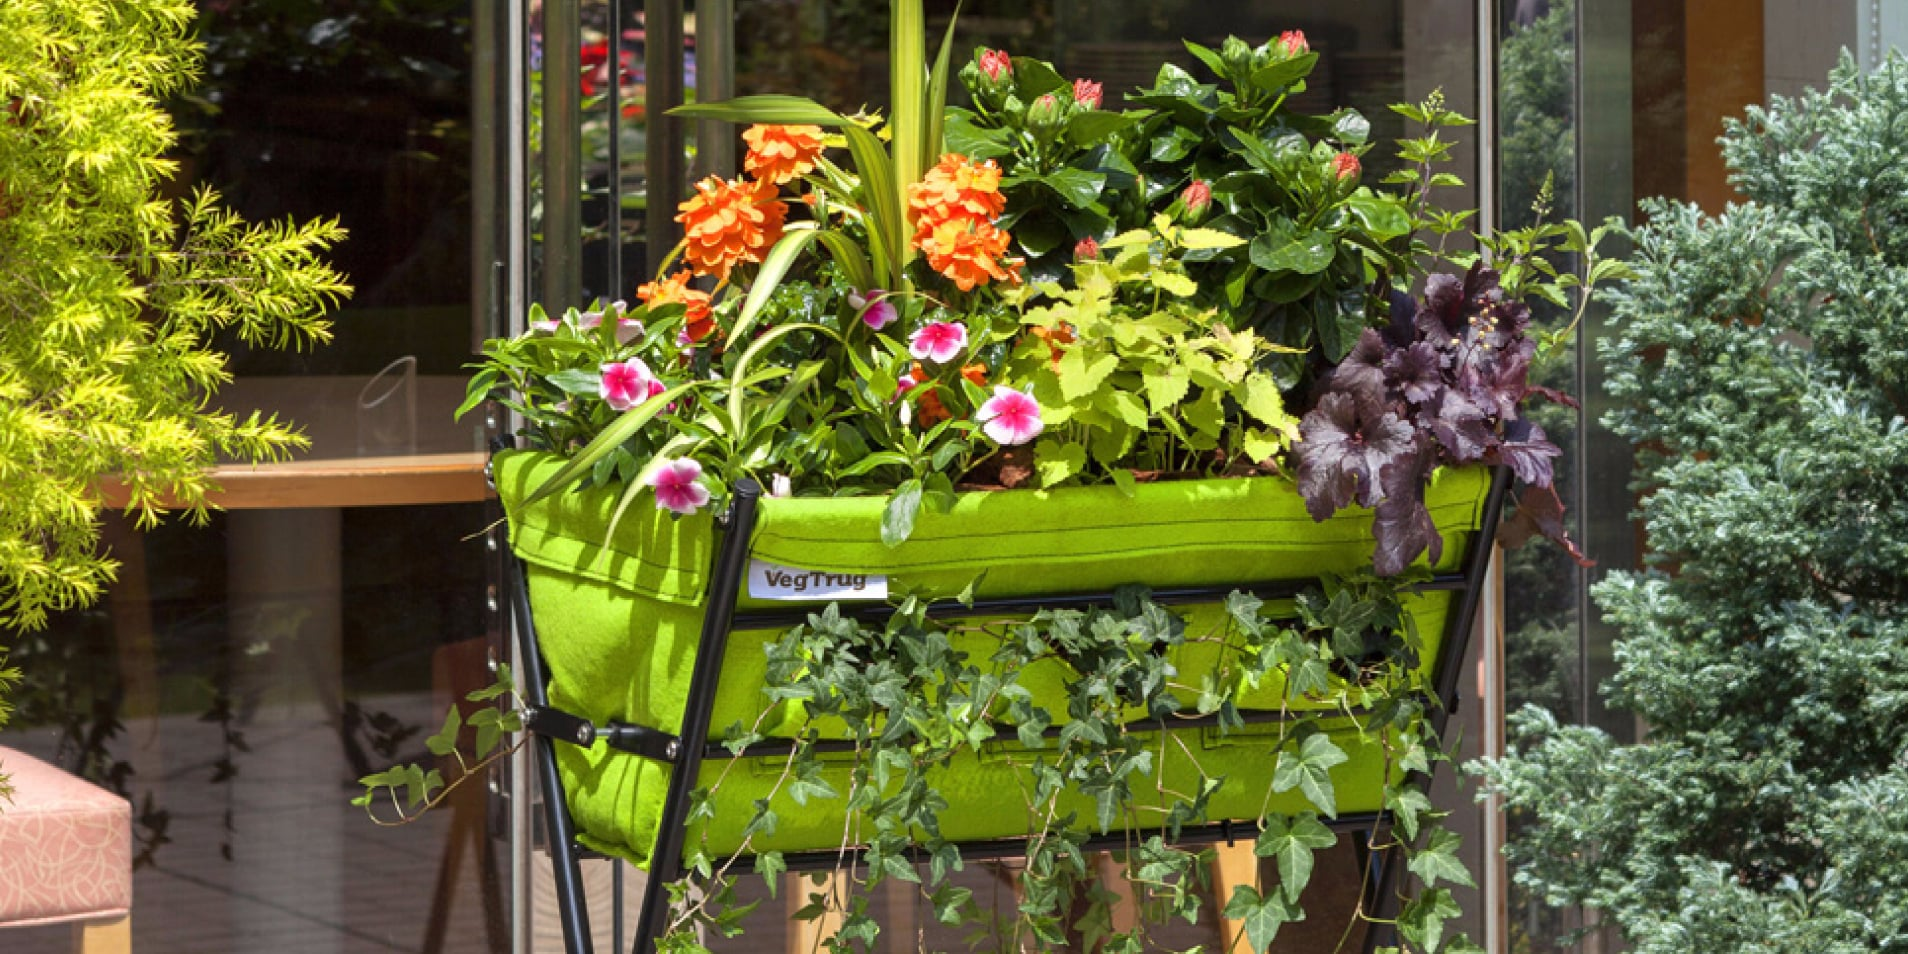 Wohnungspflanzen Urban Gardening With Your Own Raised Garden Bed Galaxus